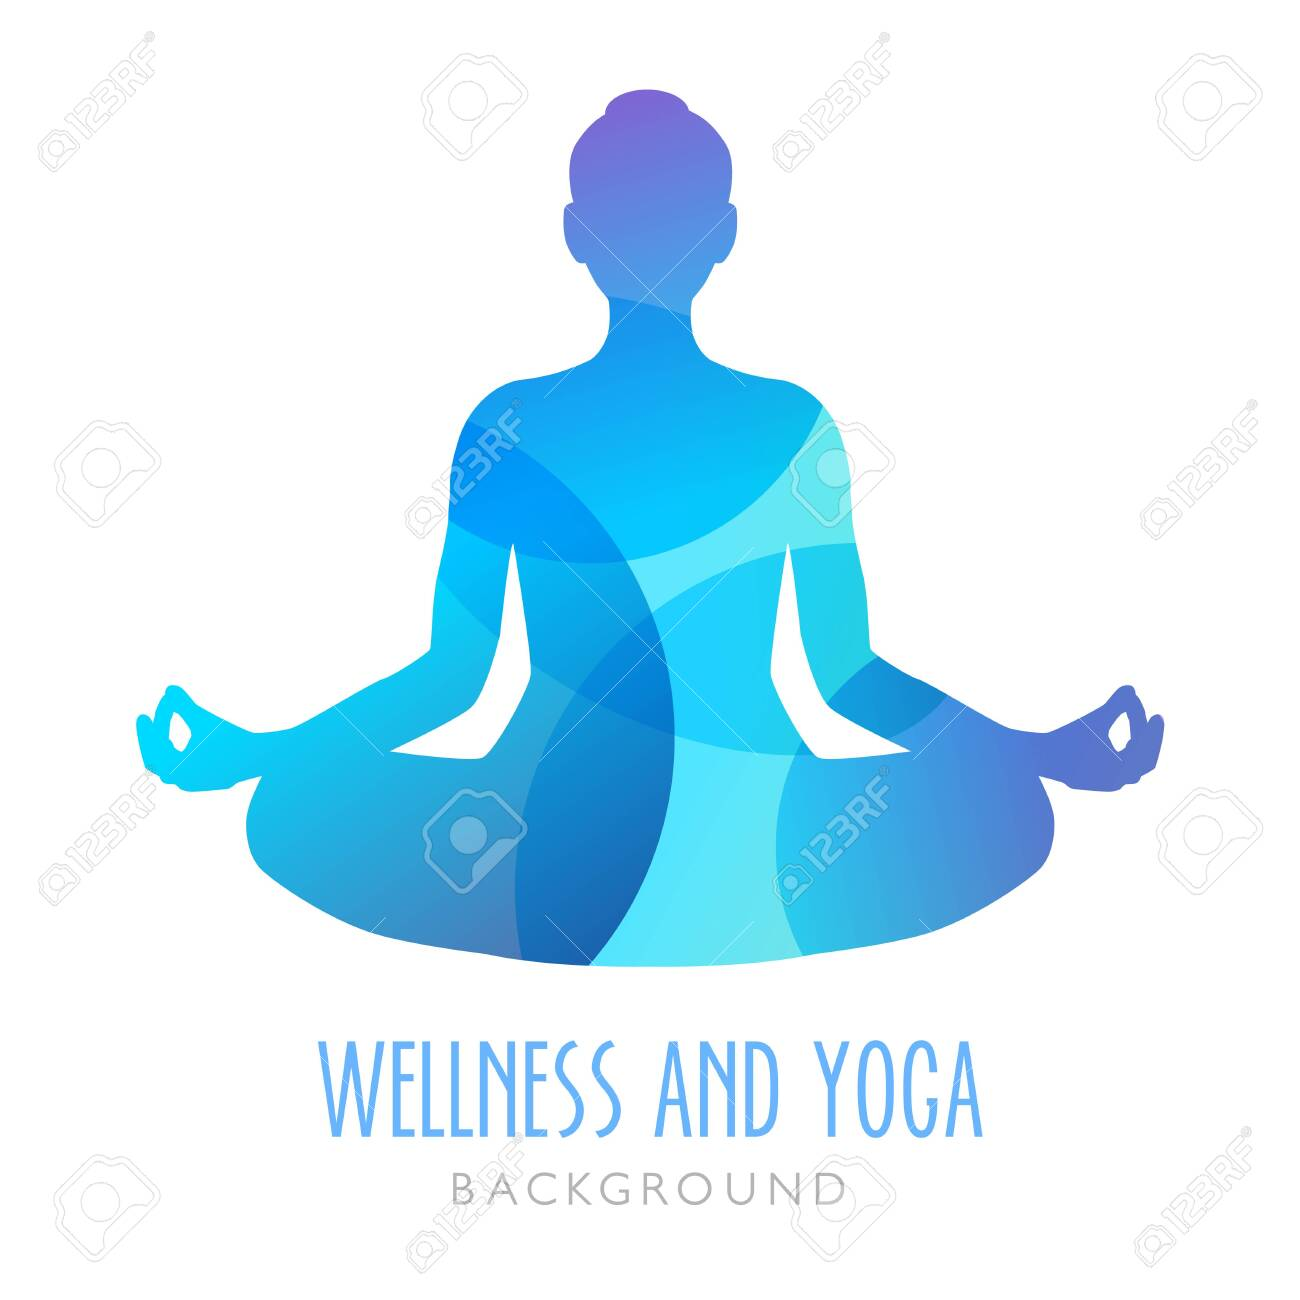 Yoga Symbol Meditation Person Can Be Used As An Ilustration Royalty Free Cliparts Vectors And Stock Illustration Image 124428193